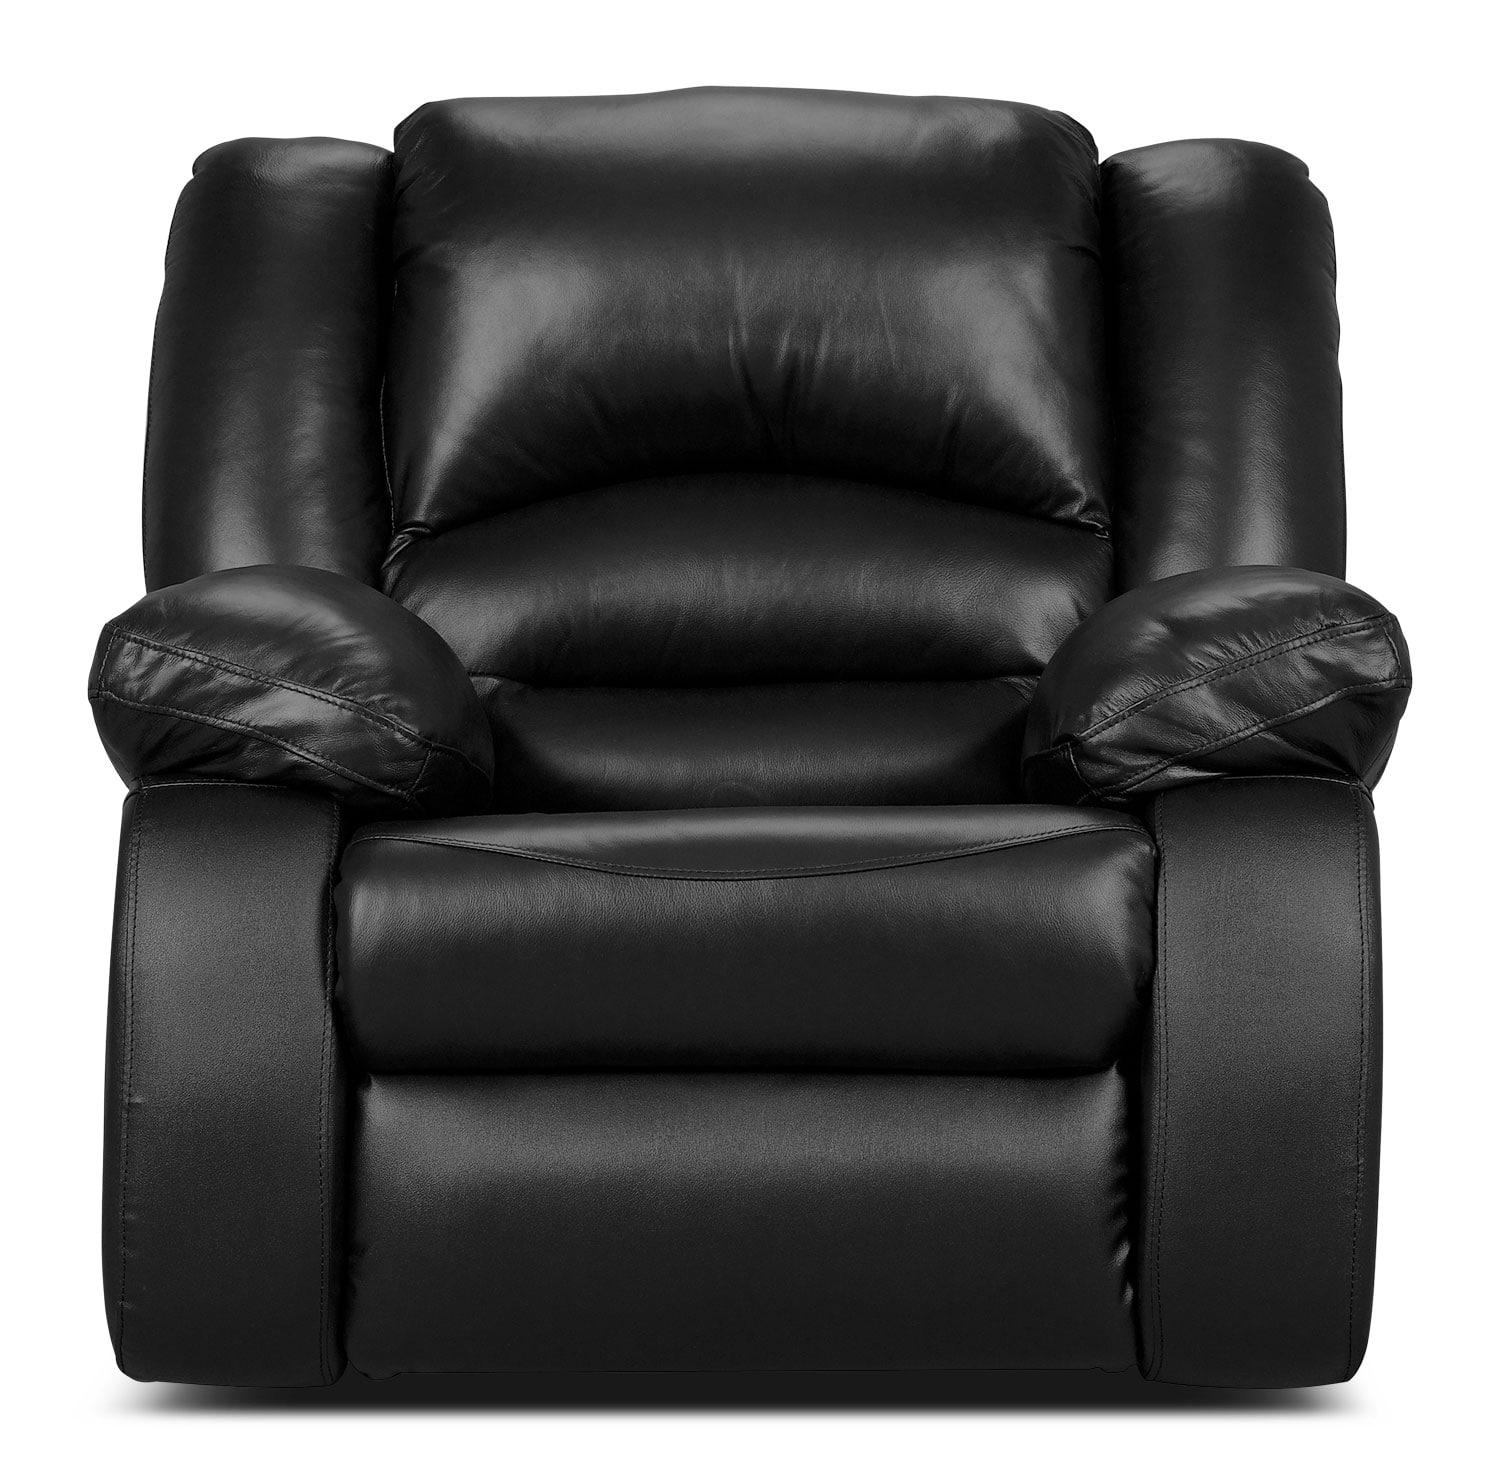 Toreno Genuine Leather Reclining Chair – Black